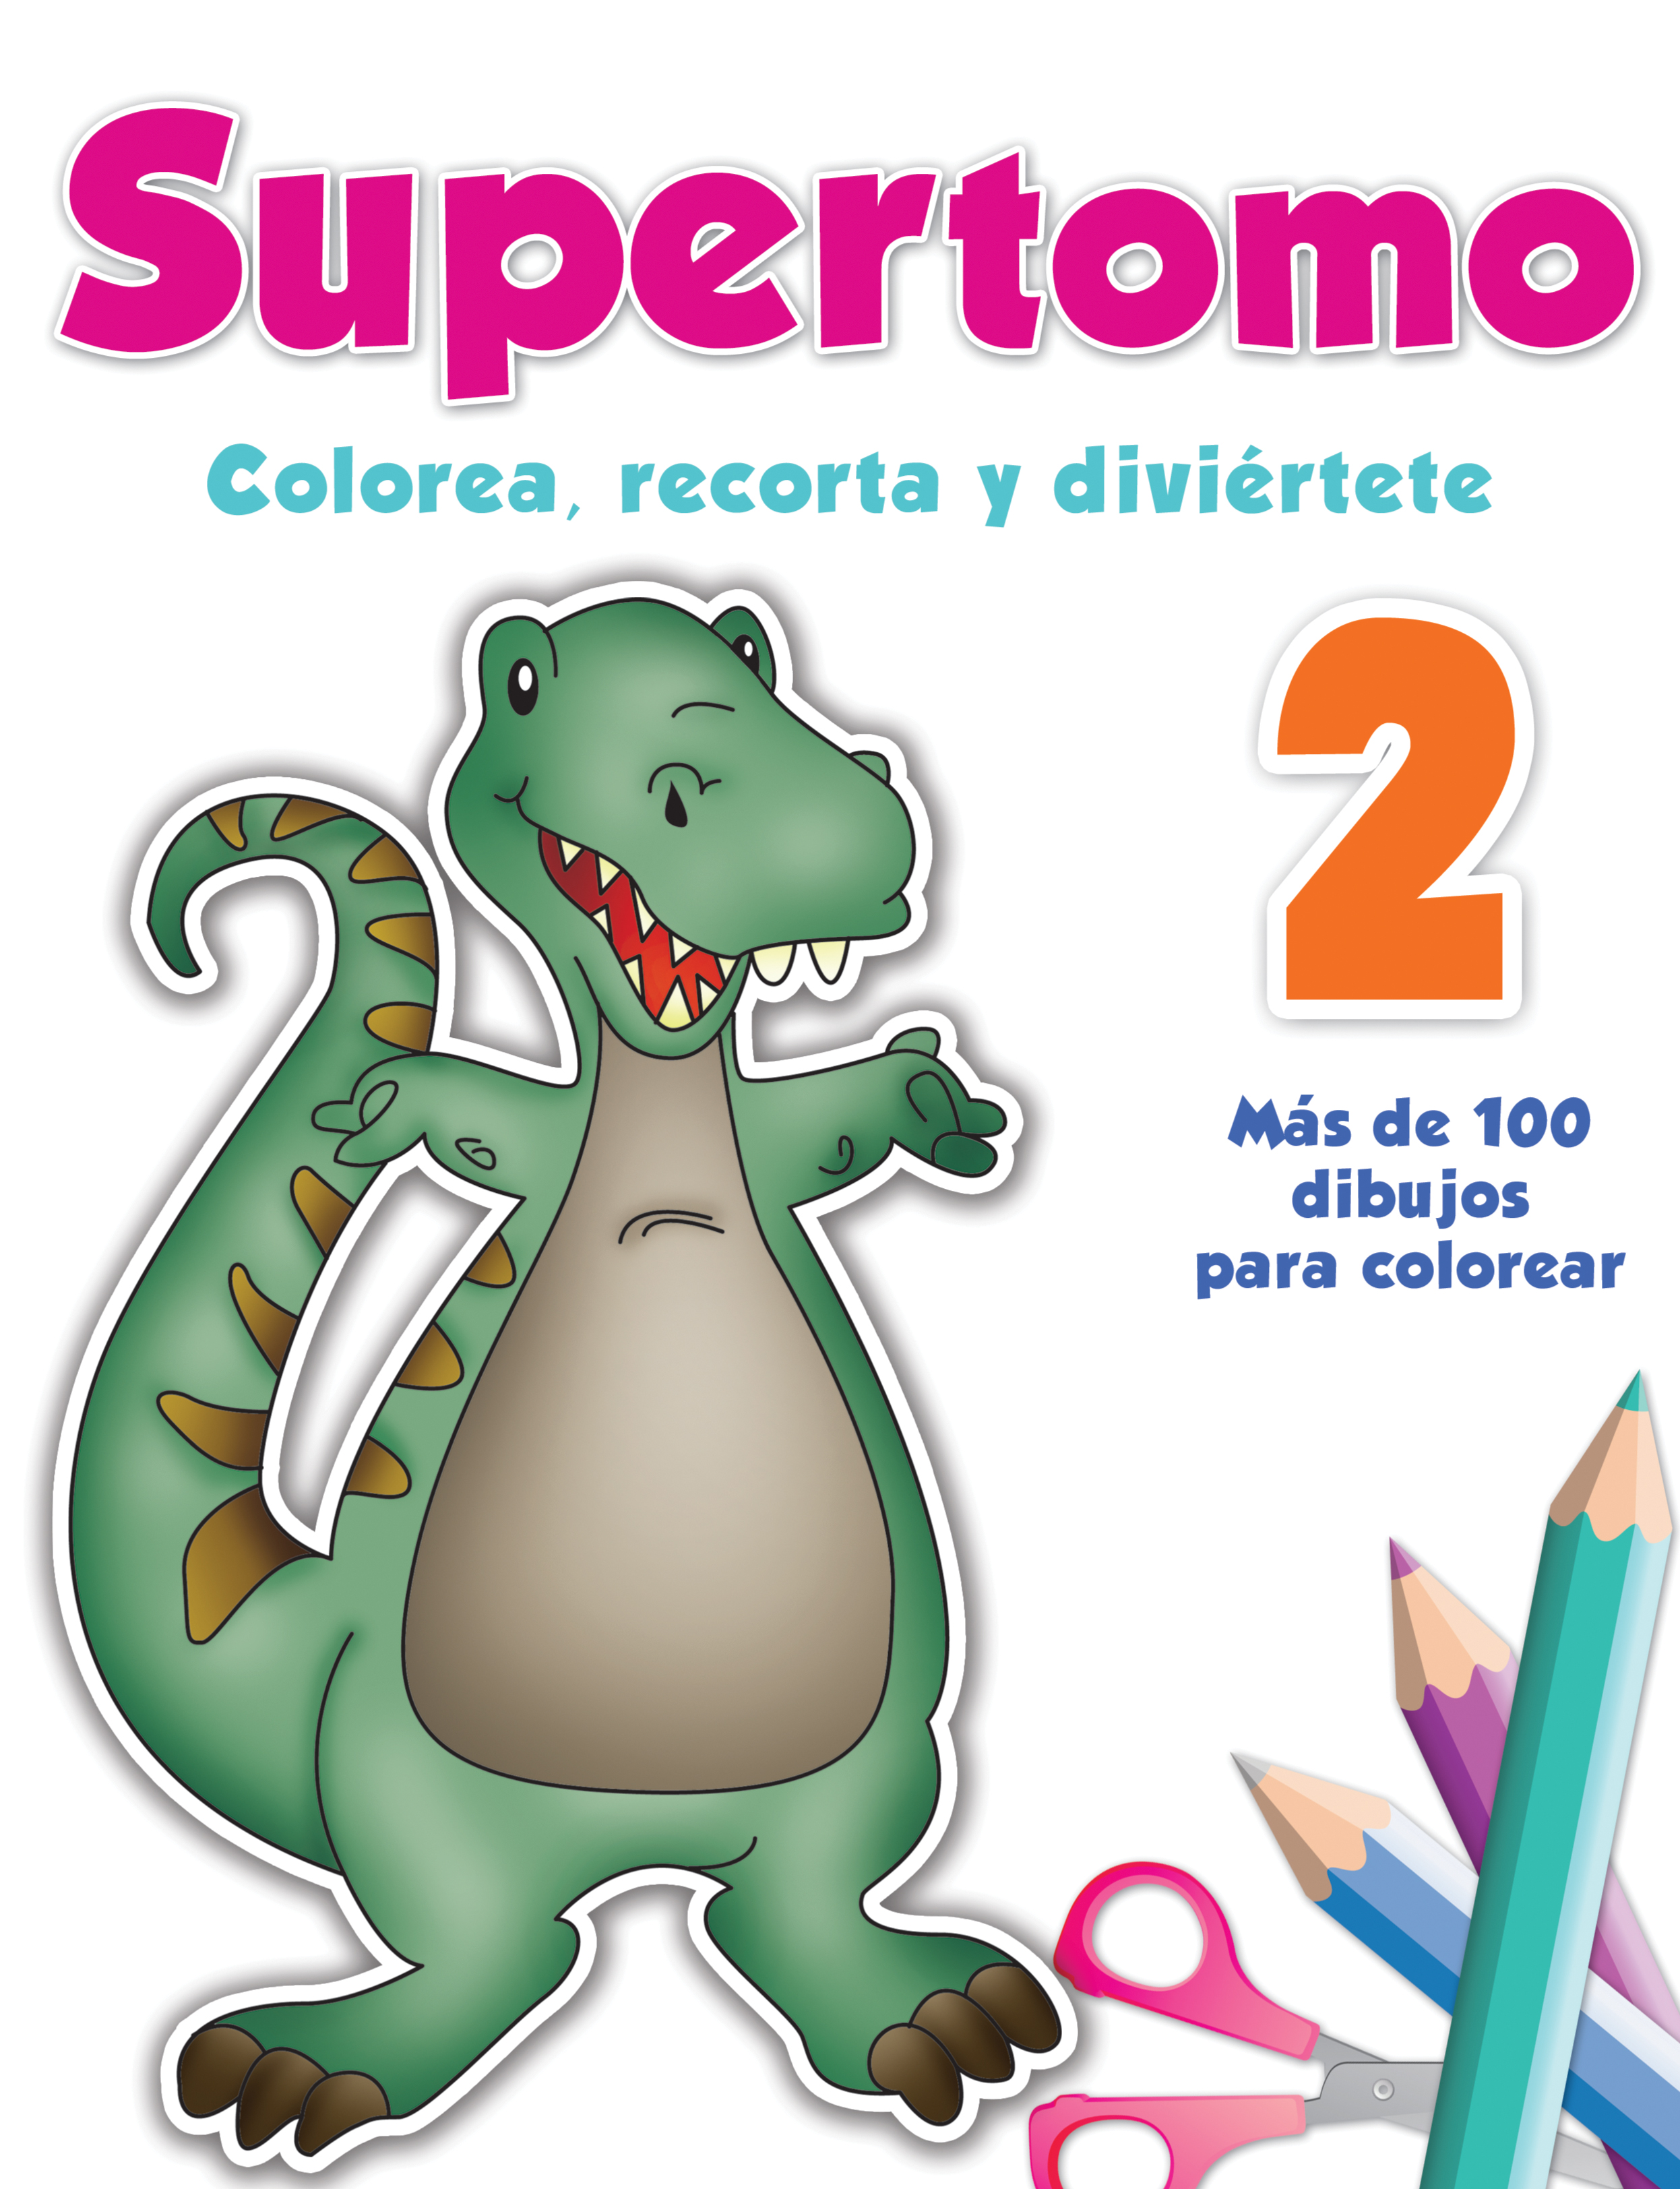 Supertomo 2. Colorea, recorta y diviértete